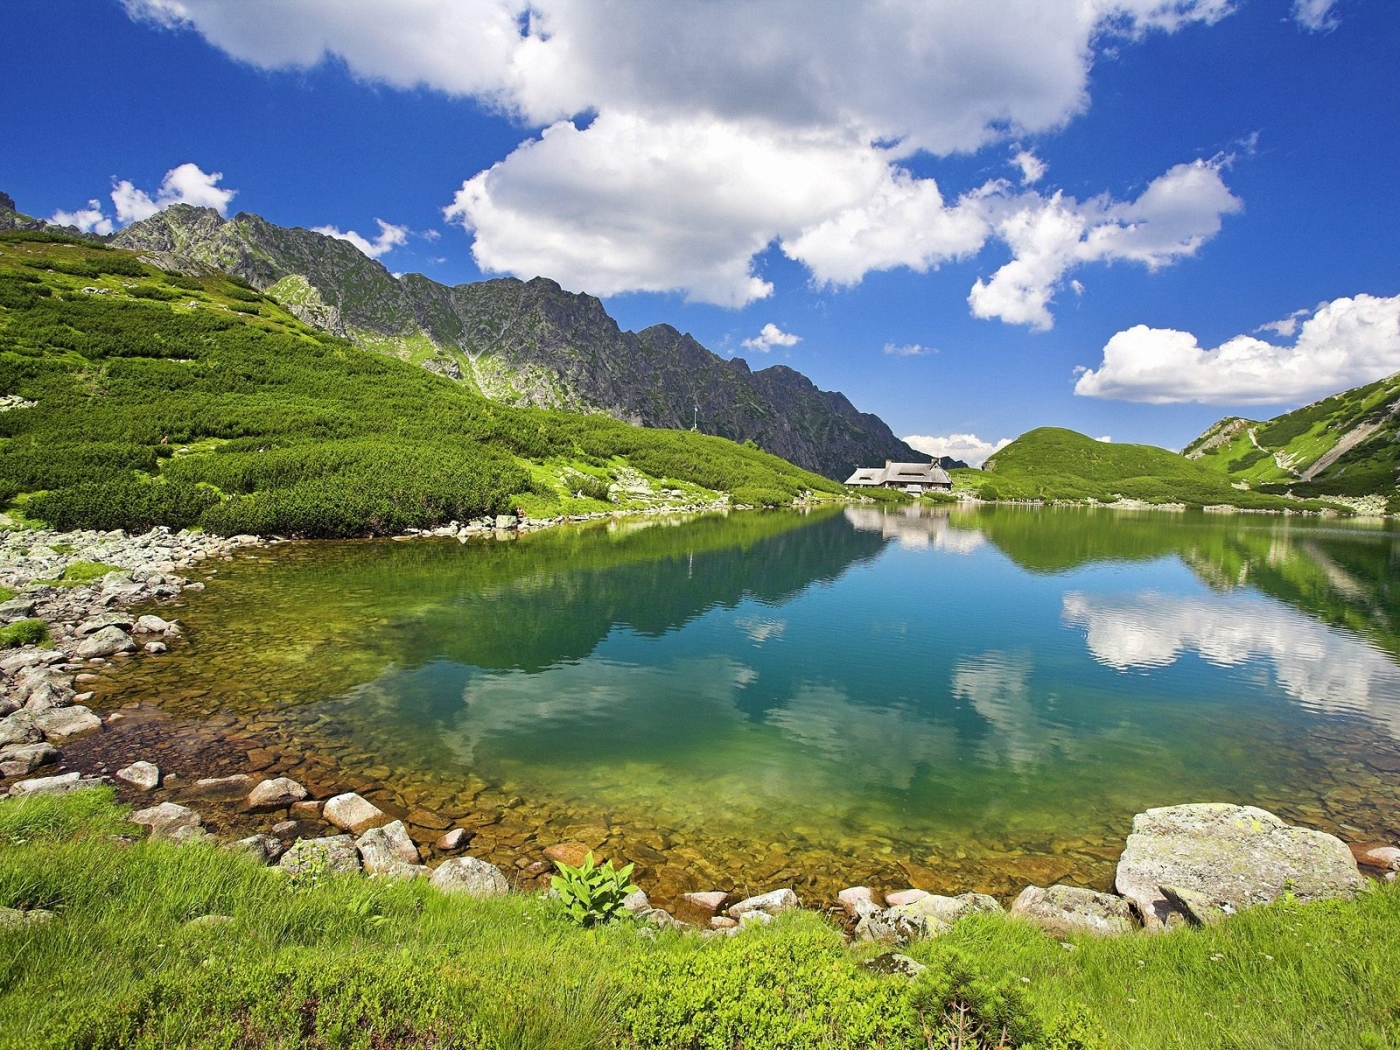 34702 download wallpaper Landscape, Lakes screensavers and pictures for free